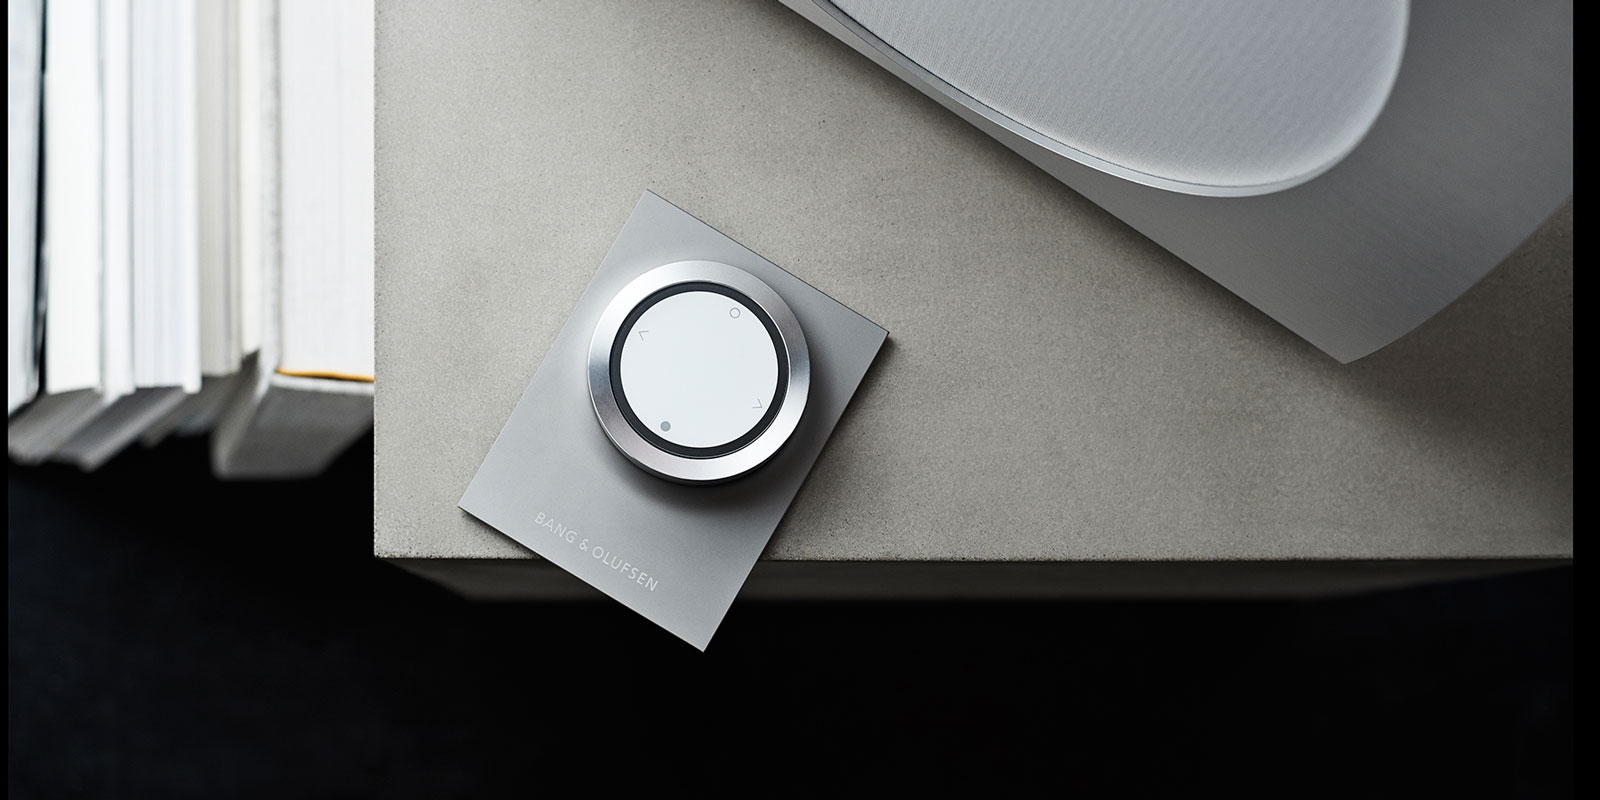 Beosound remote is a stunning aluminium and simple to use remote control for your music.